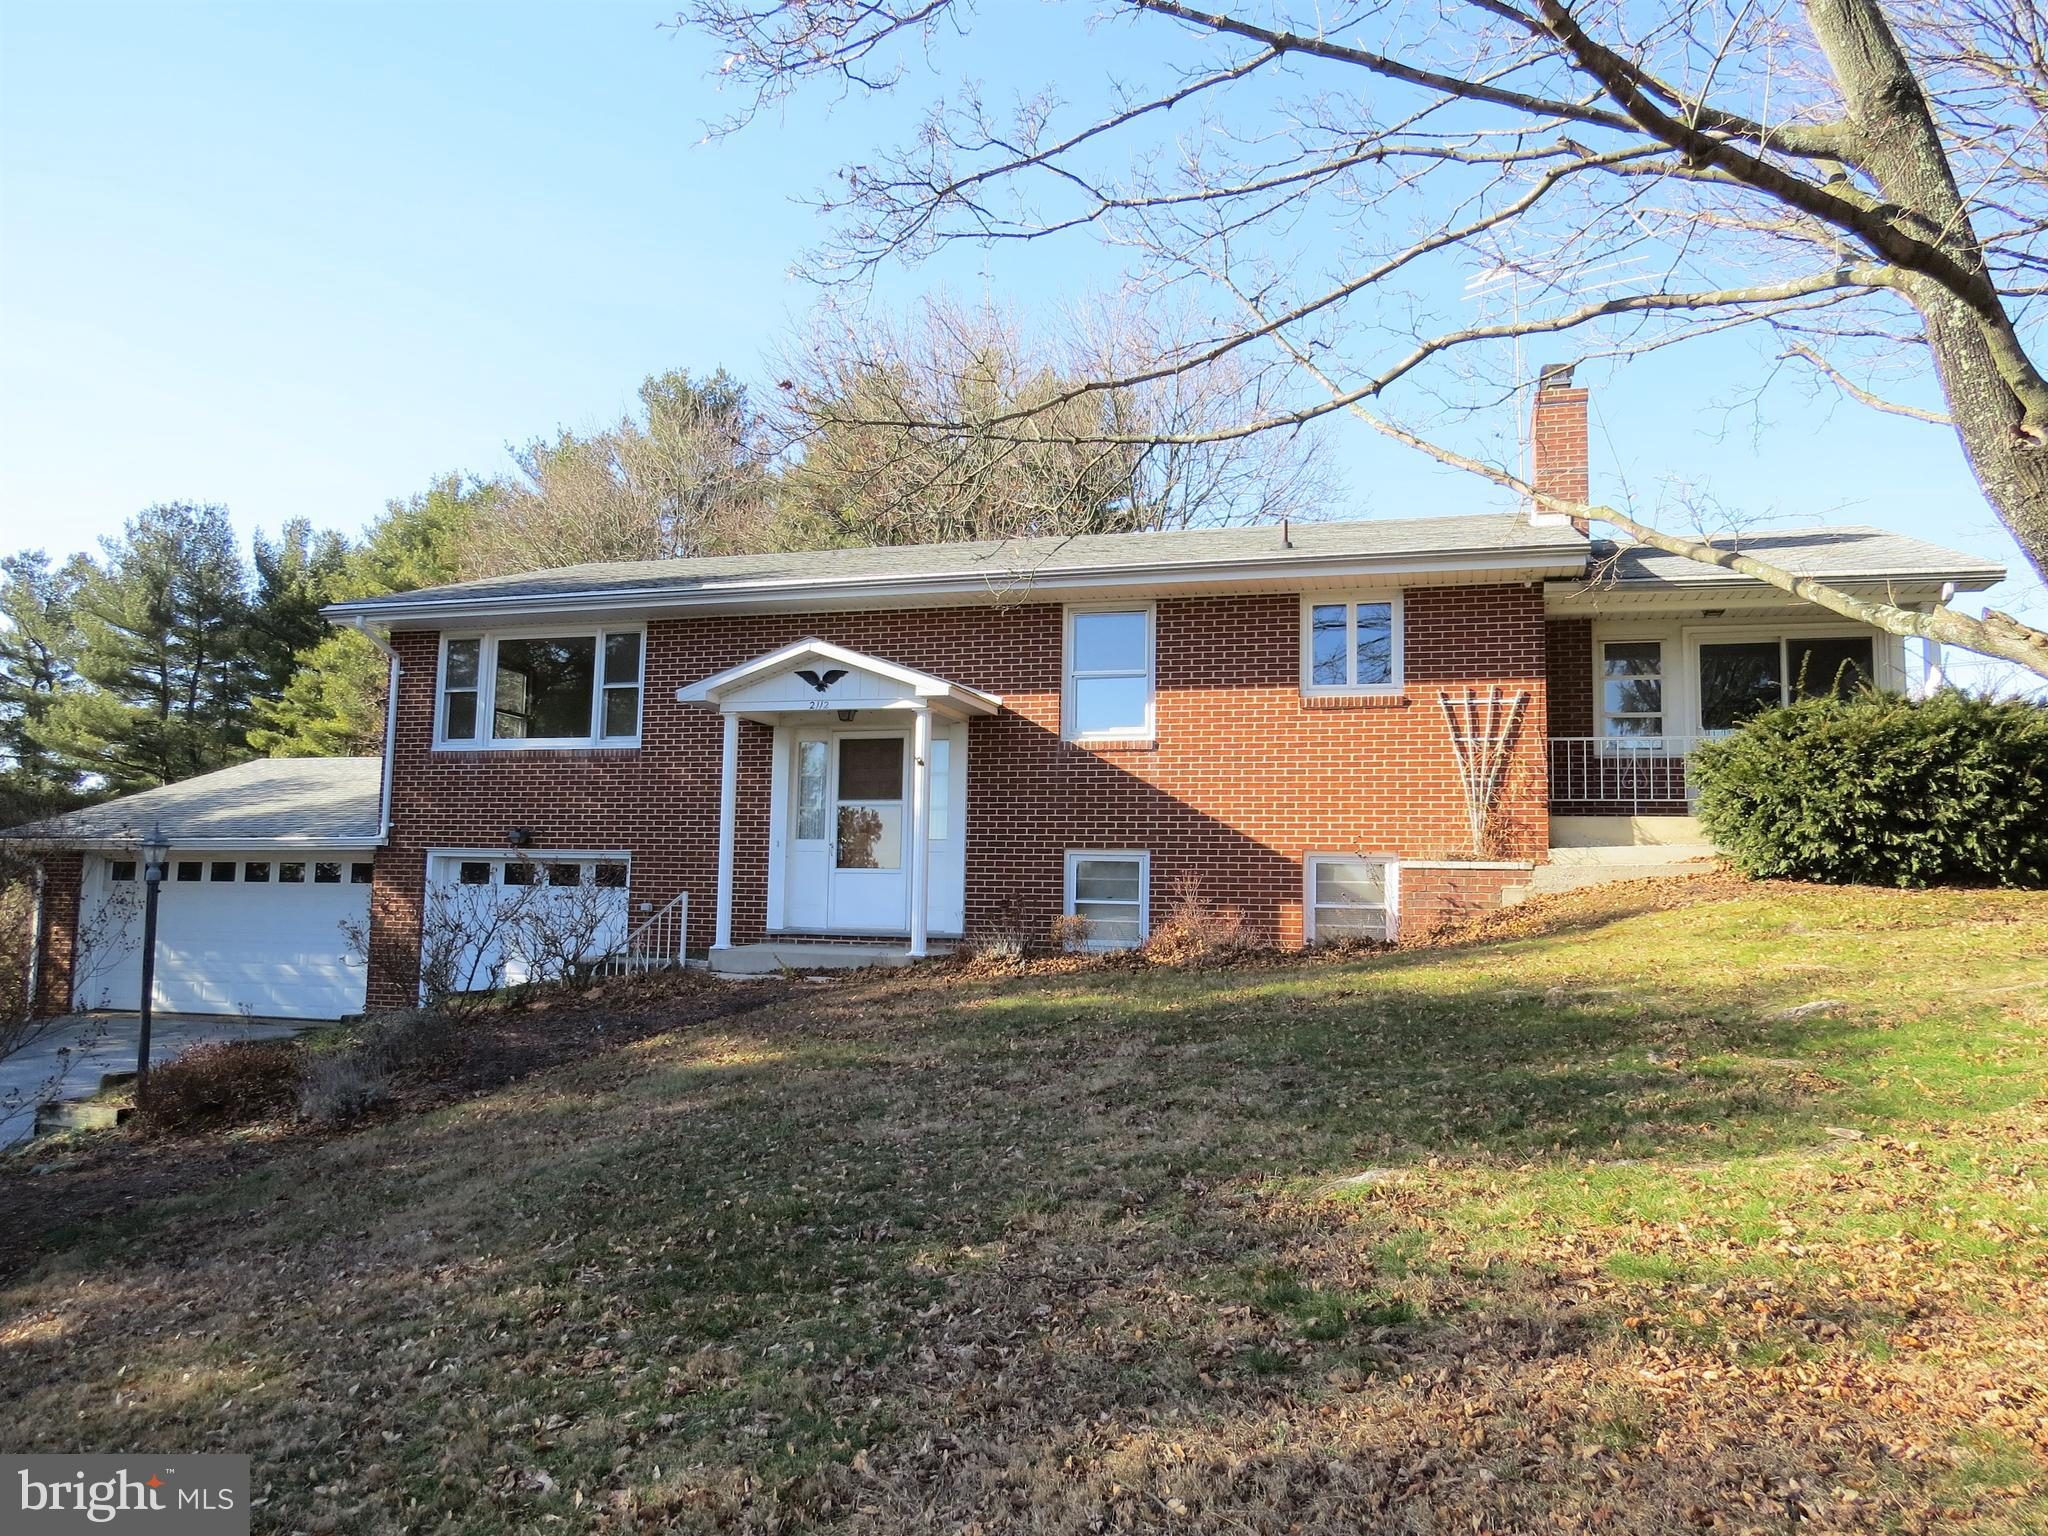 Large 3 Bedroom Brick Home Includes 2.3 Acres With The Convenience Of Local Shopping Nearby Within A